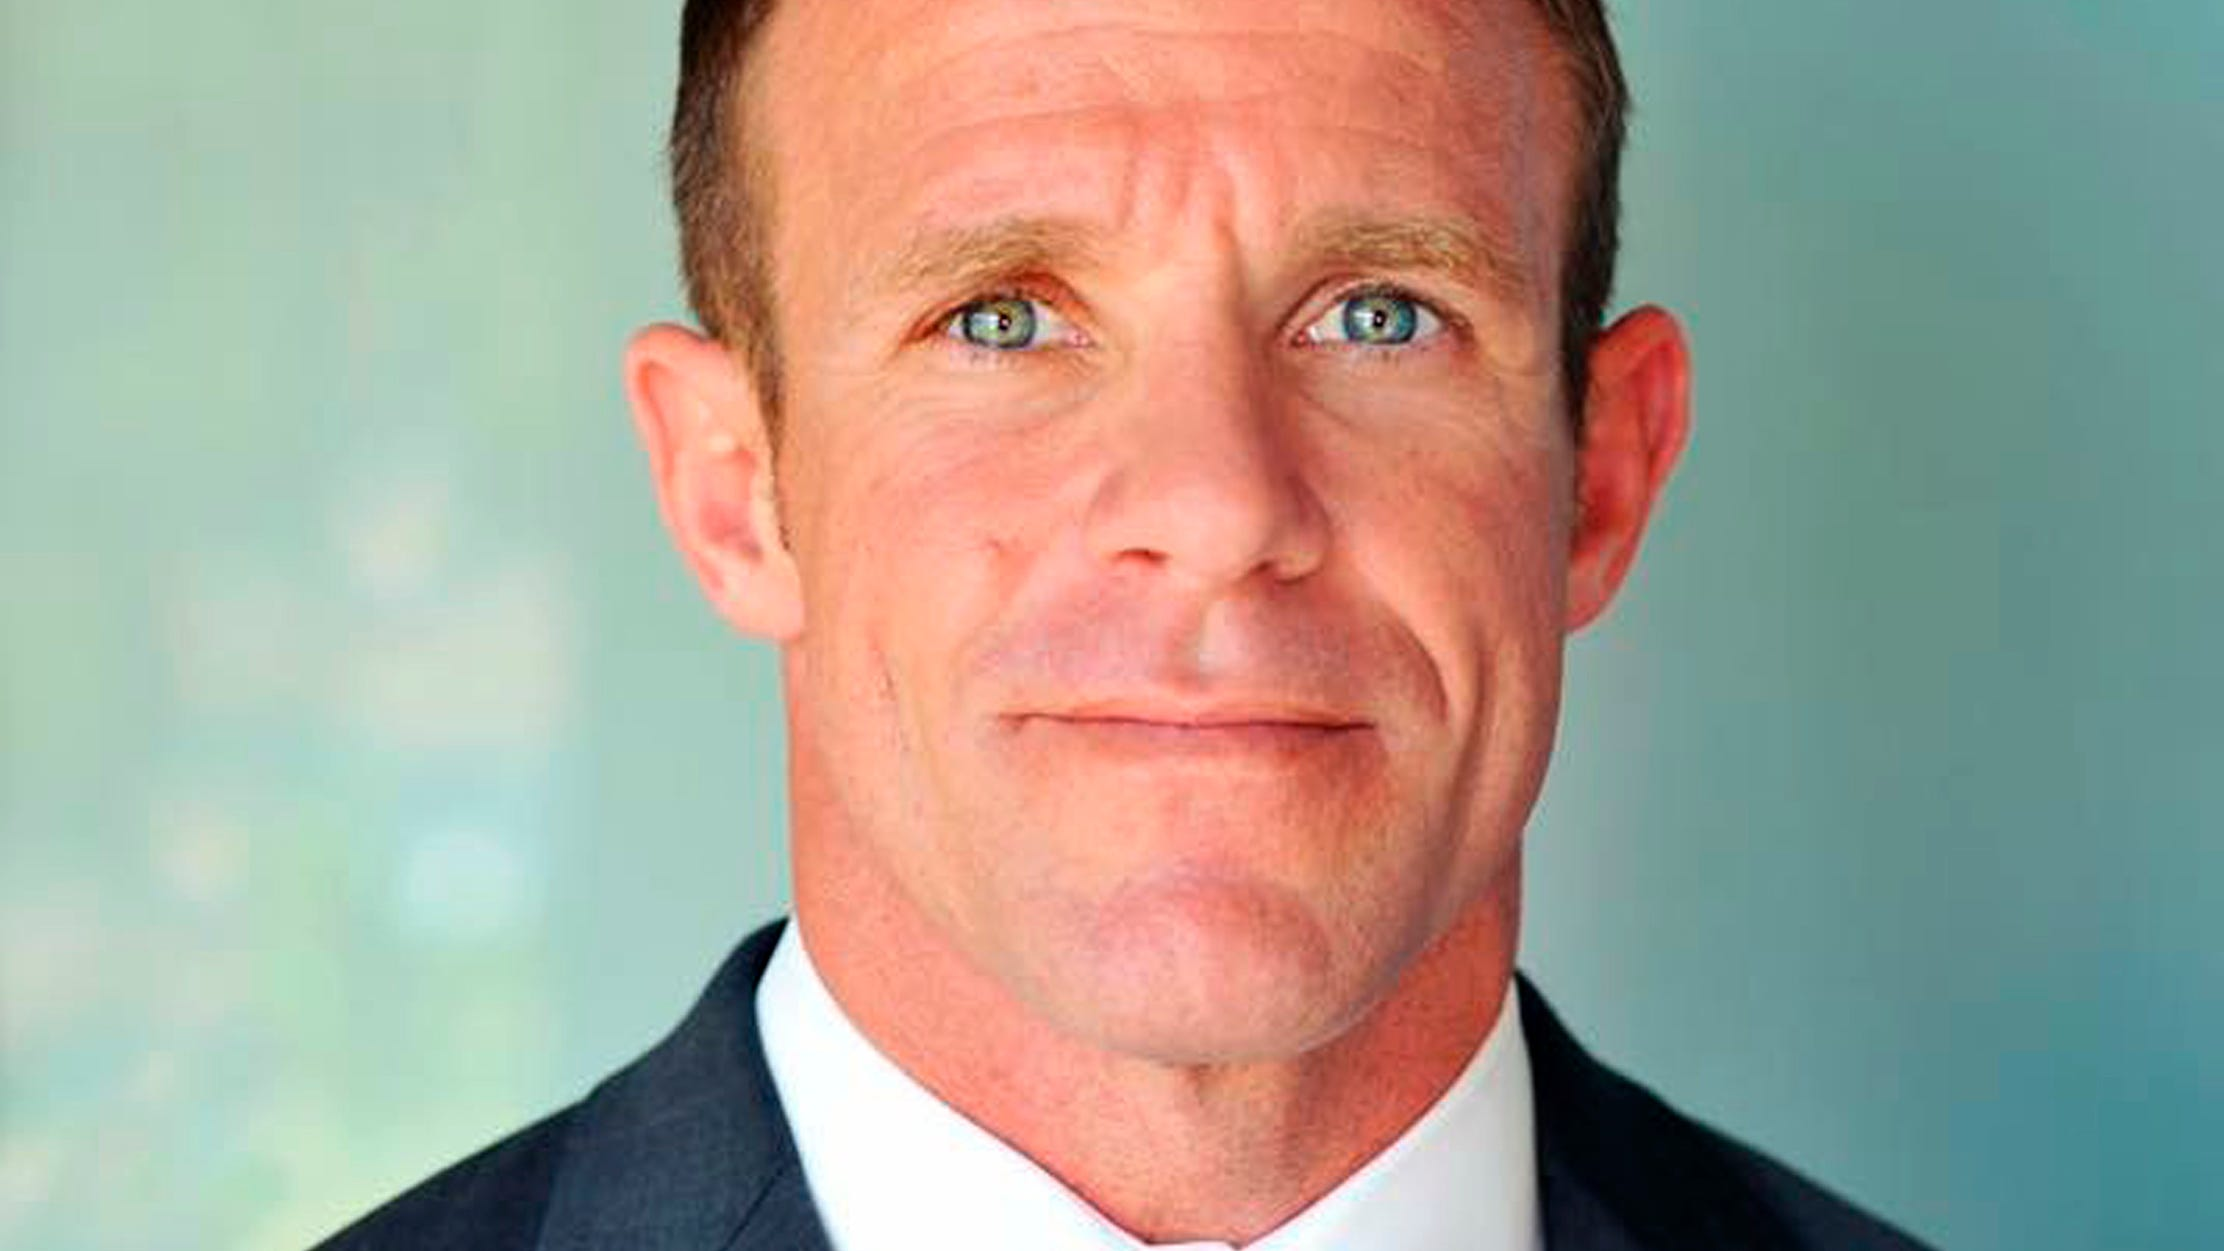 Navy SEAL Edward Gallagher has been charged with murder in the 2017 death of an Iraqi war prisoner.